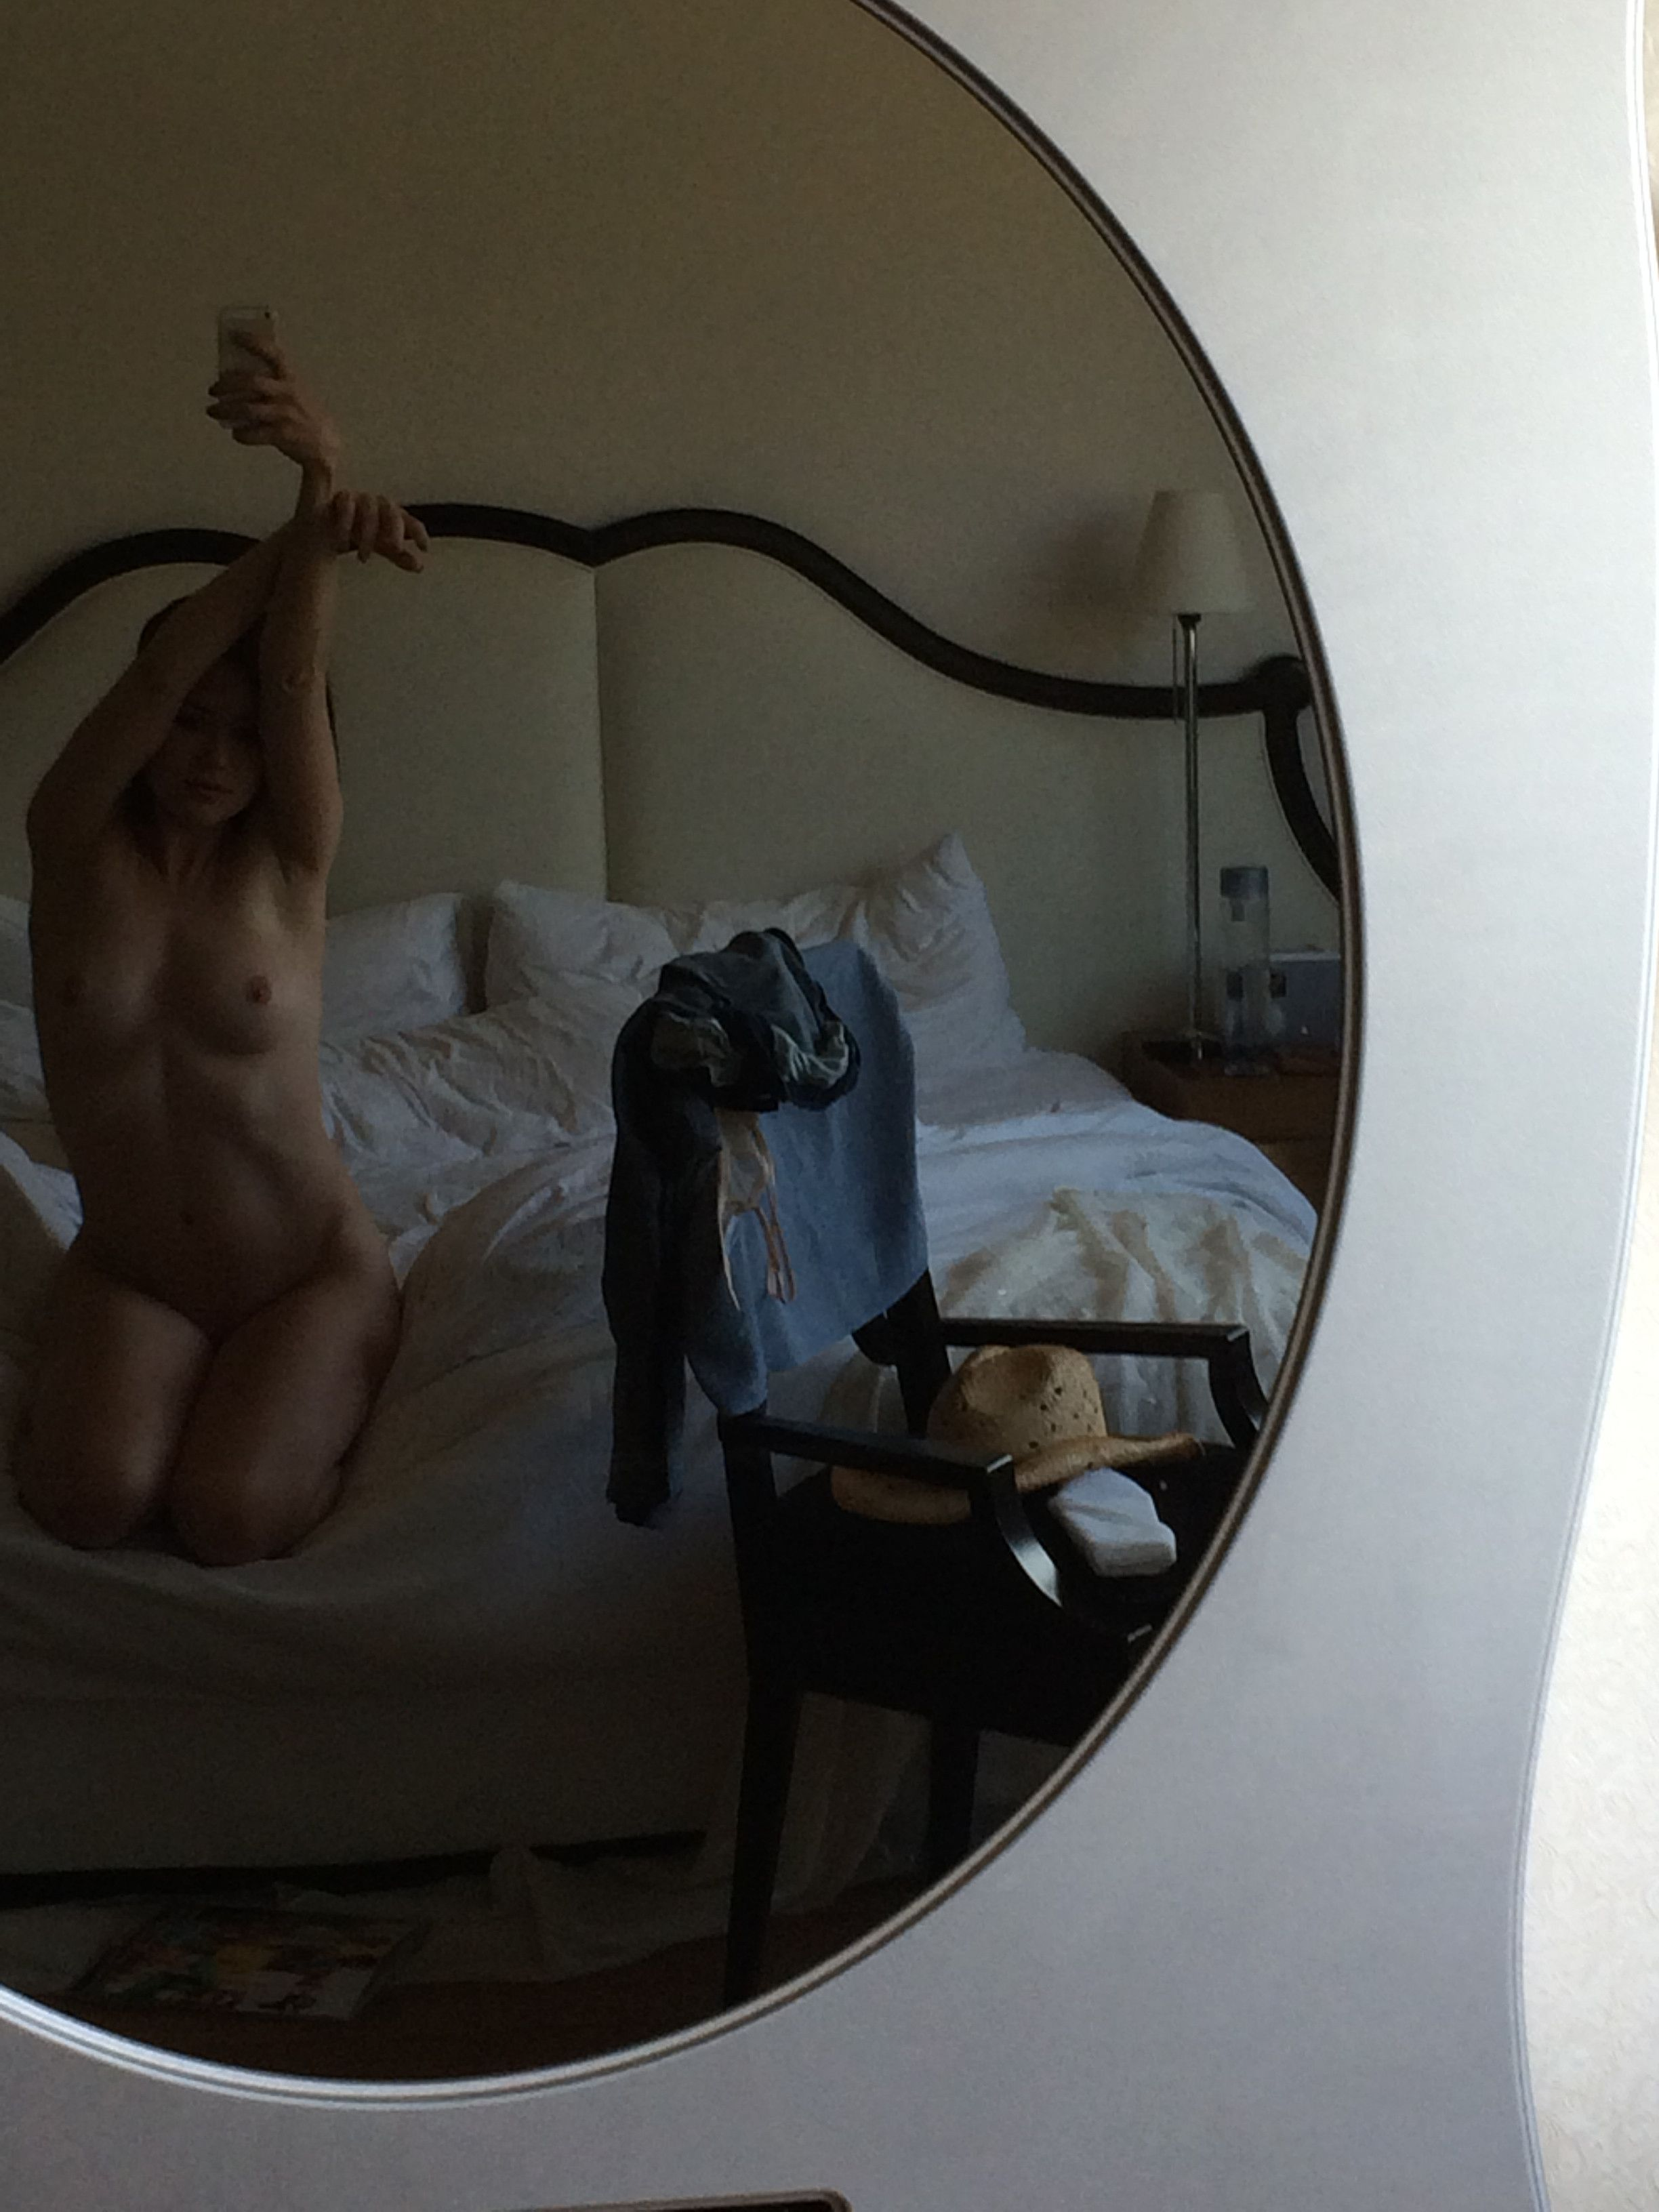 Megan Boone naked in the mirror